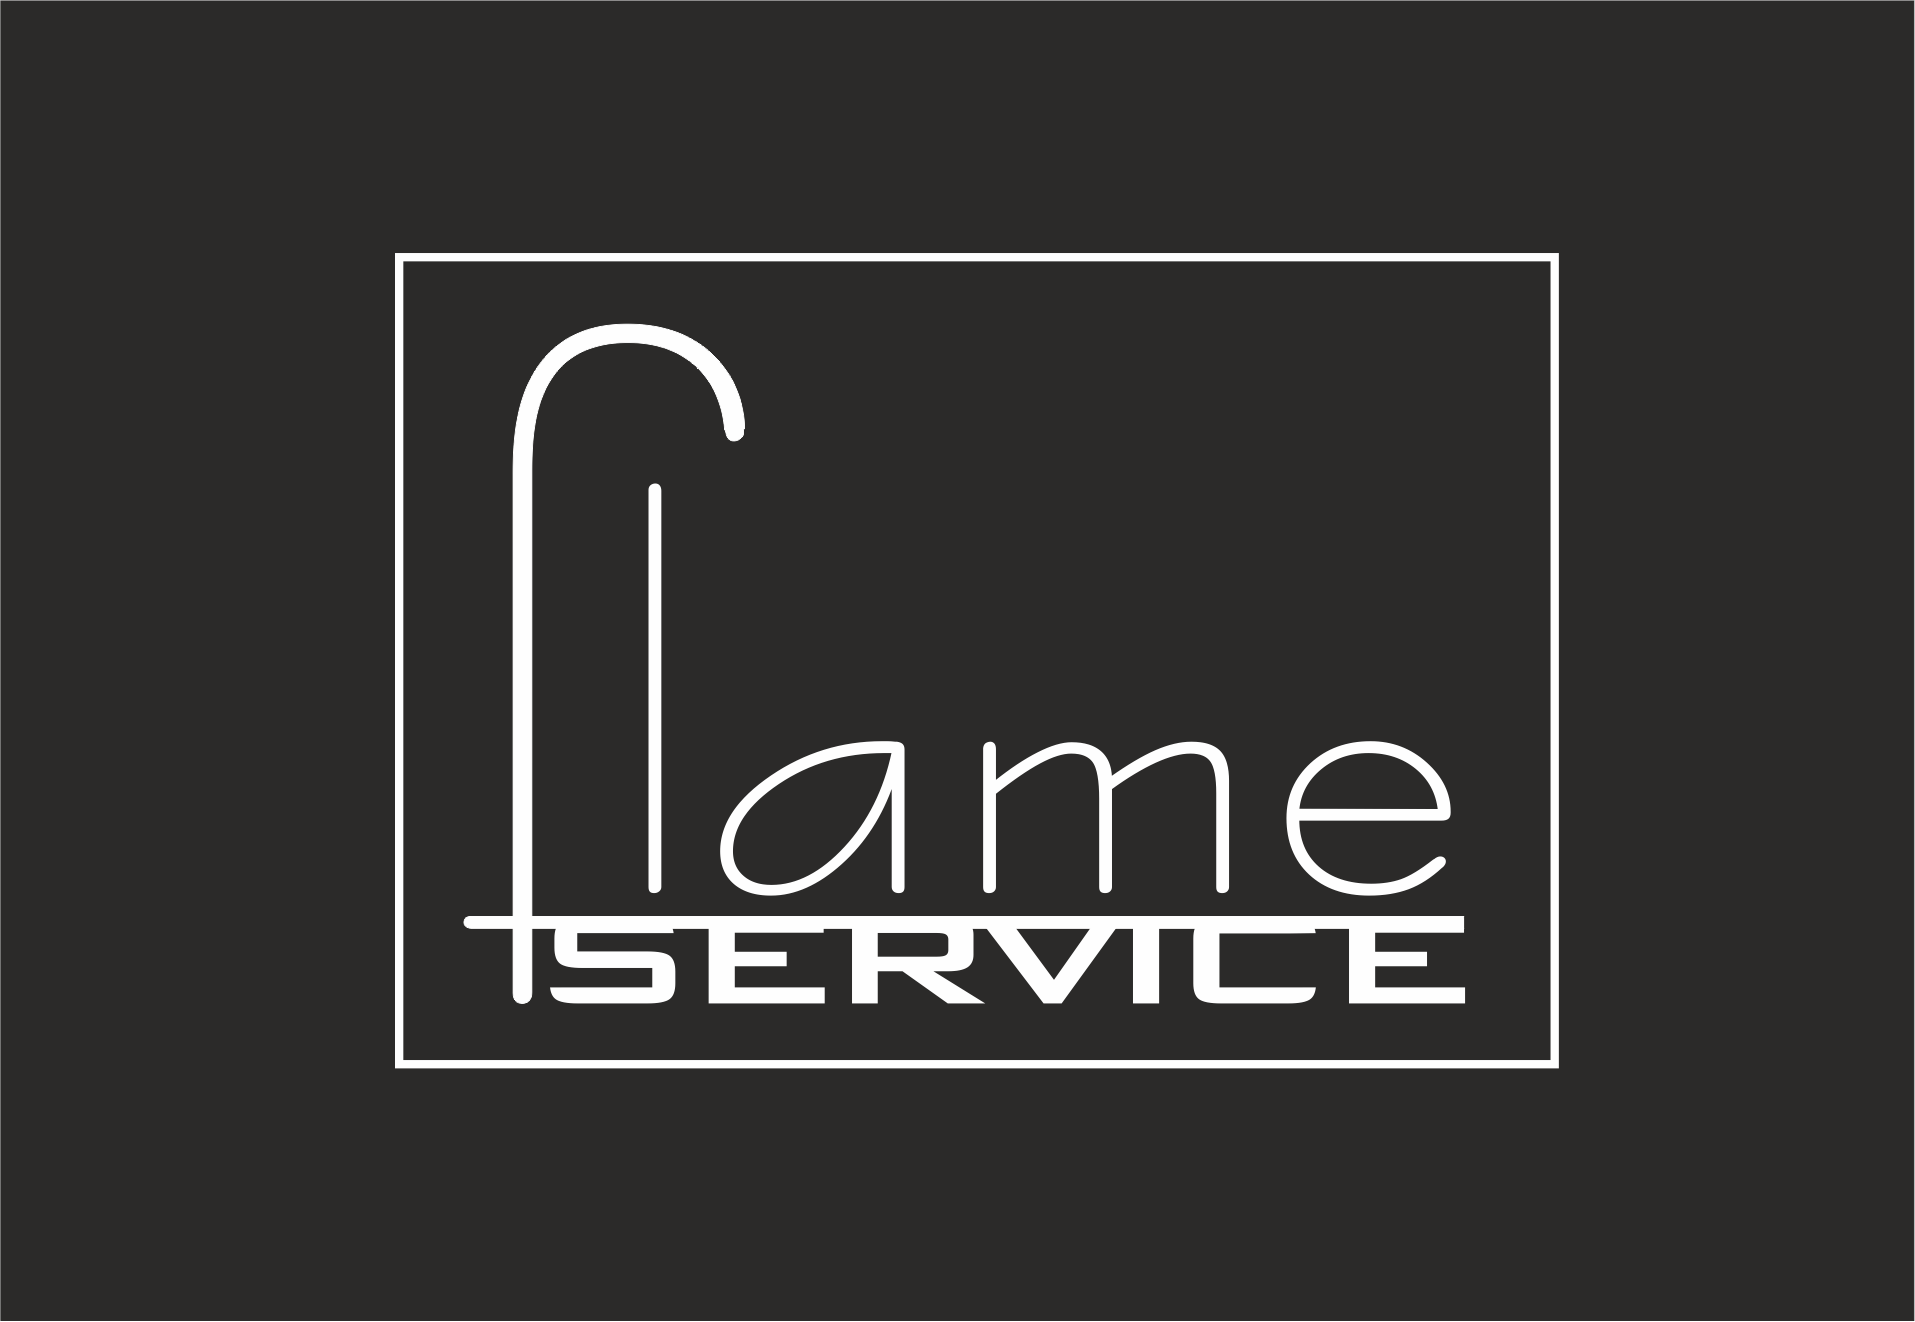 FLAME LOGO REAL